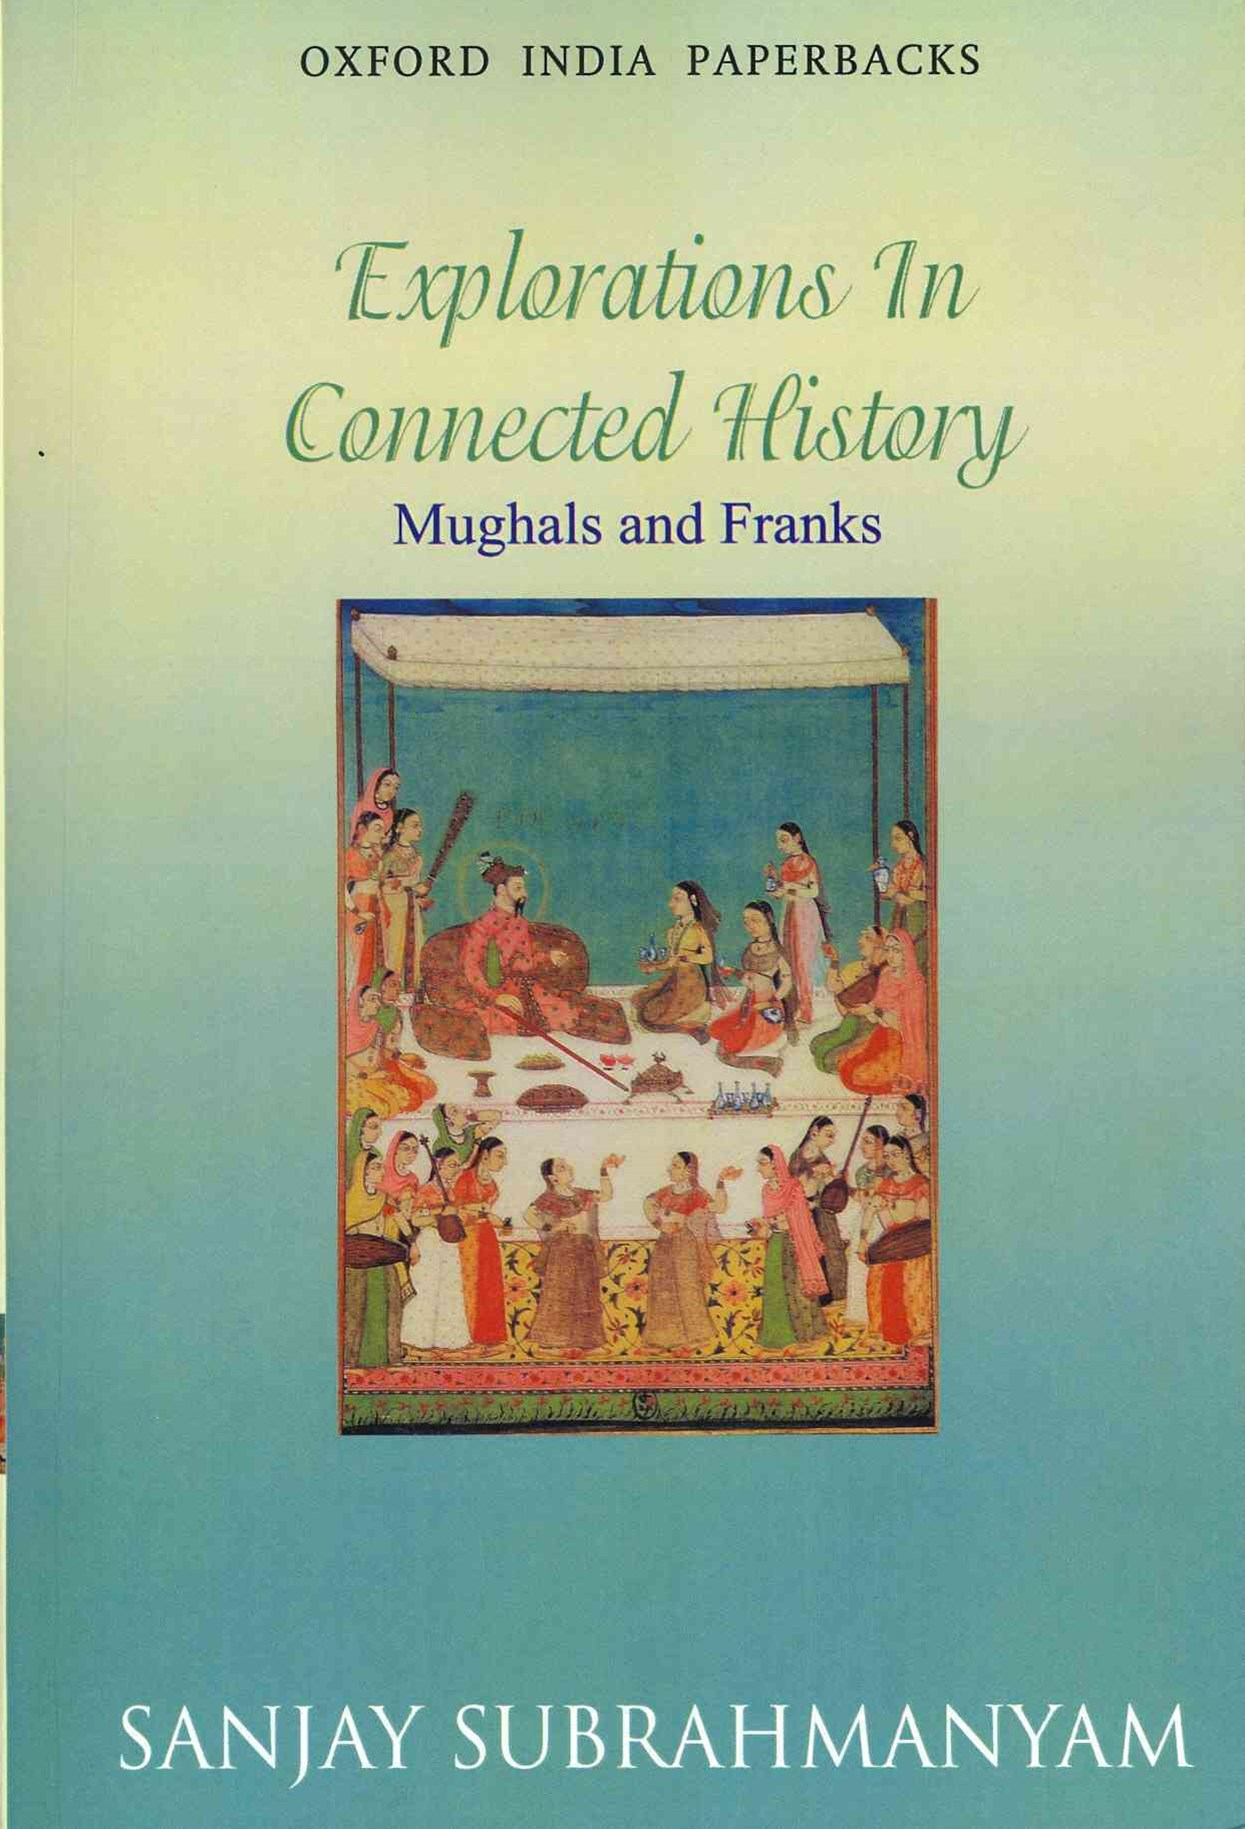 Mughals and Franks